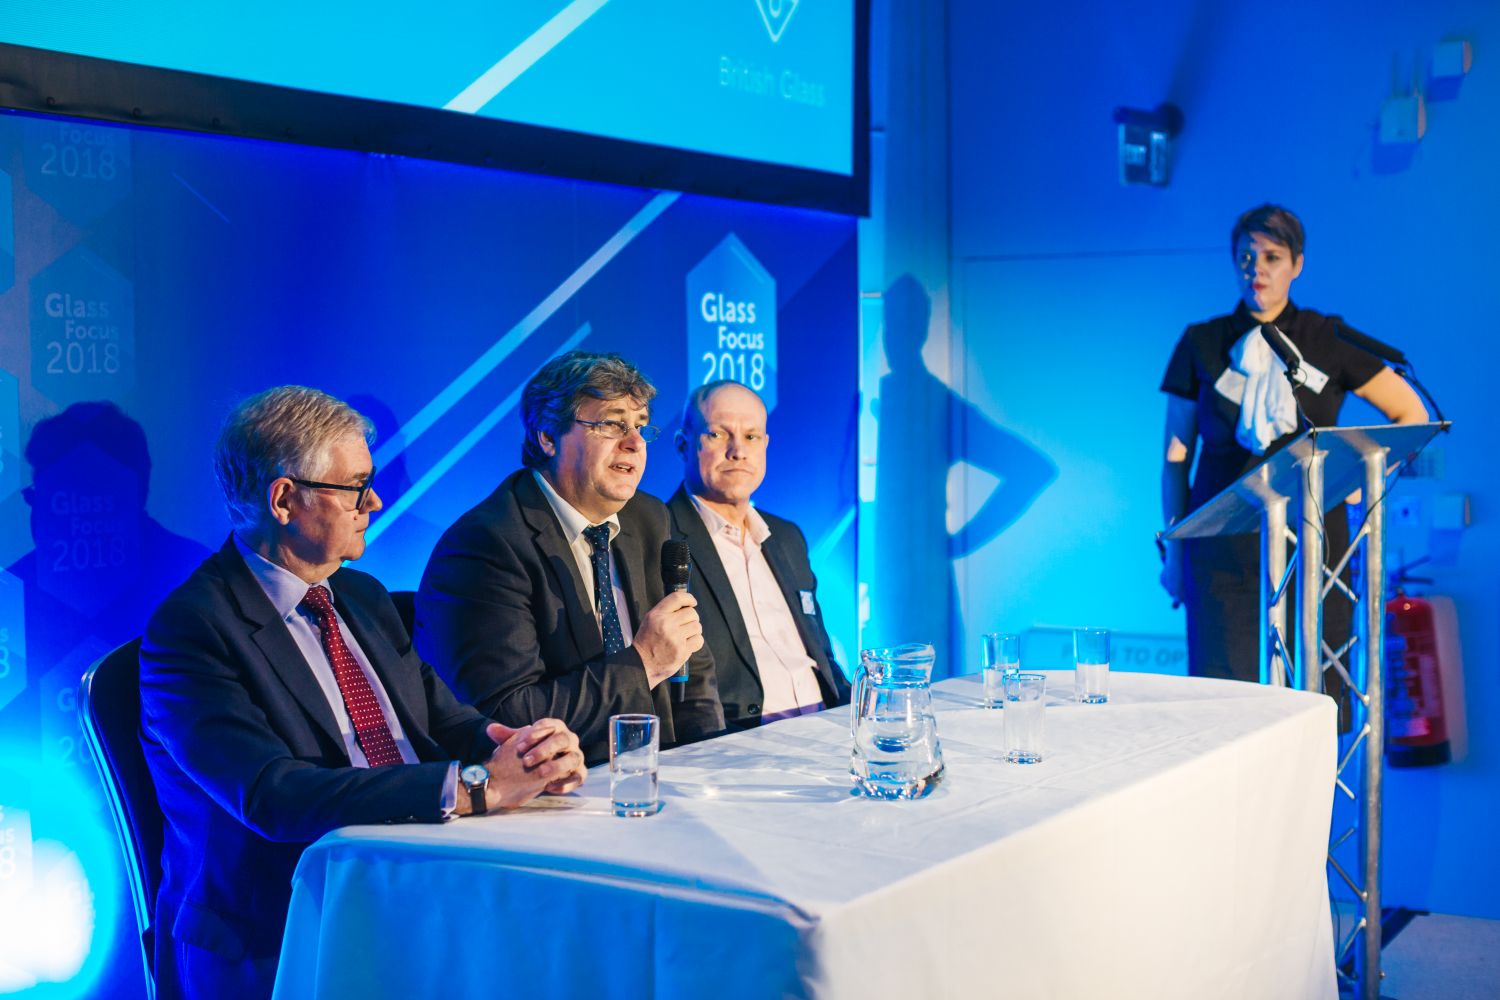 The Glass Focus 2018 panel consisting of Graham Hillier of CPI, British Glass CEO Dave Dalton and Siemens's Alan Norbury